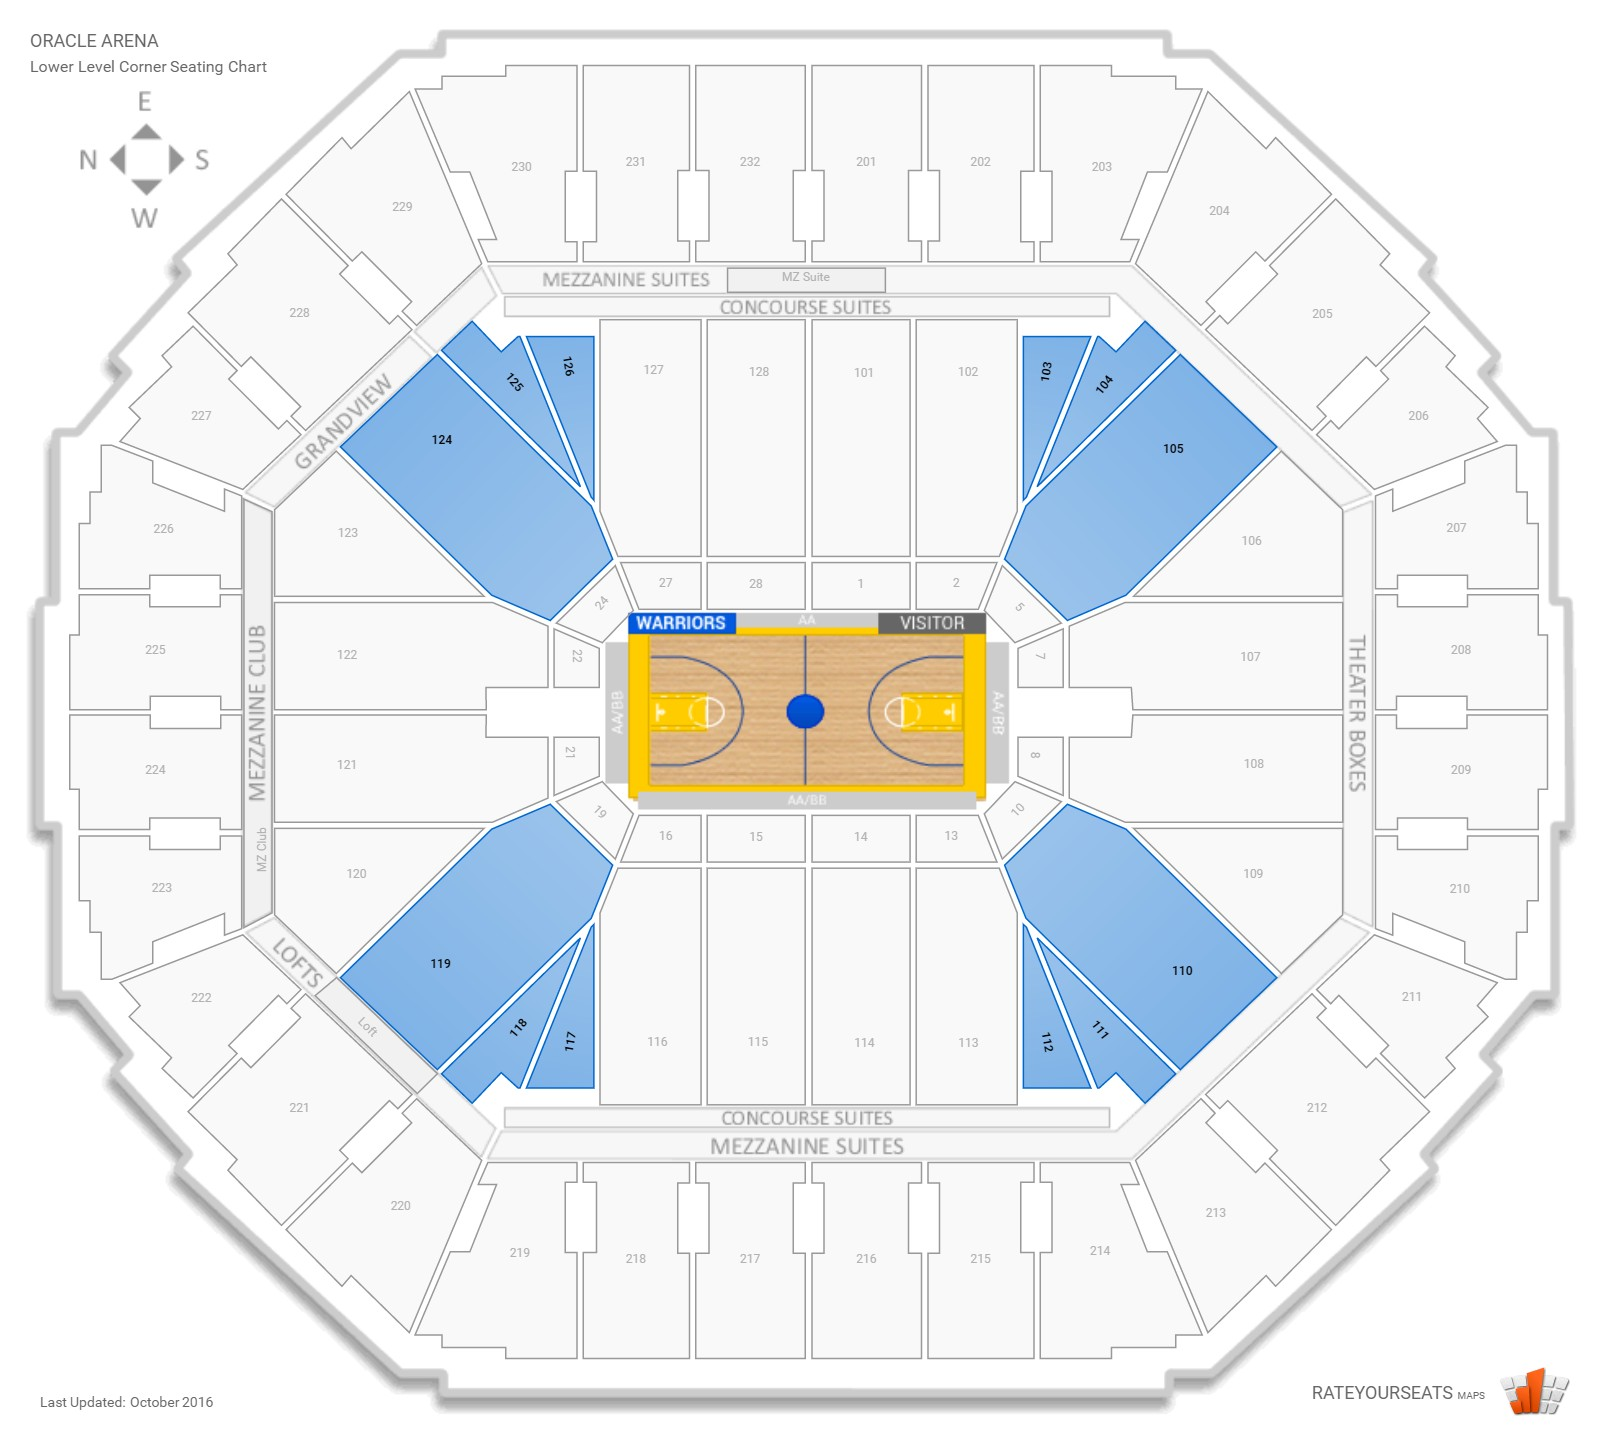 Location Of The New Warriors Stadium: Oracle Arena Basketball Seating